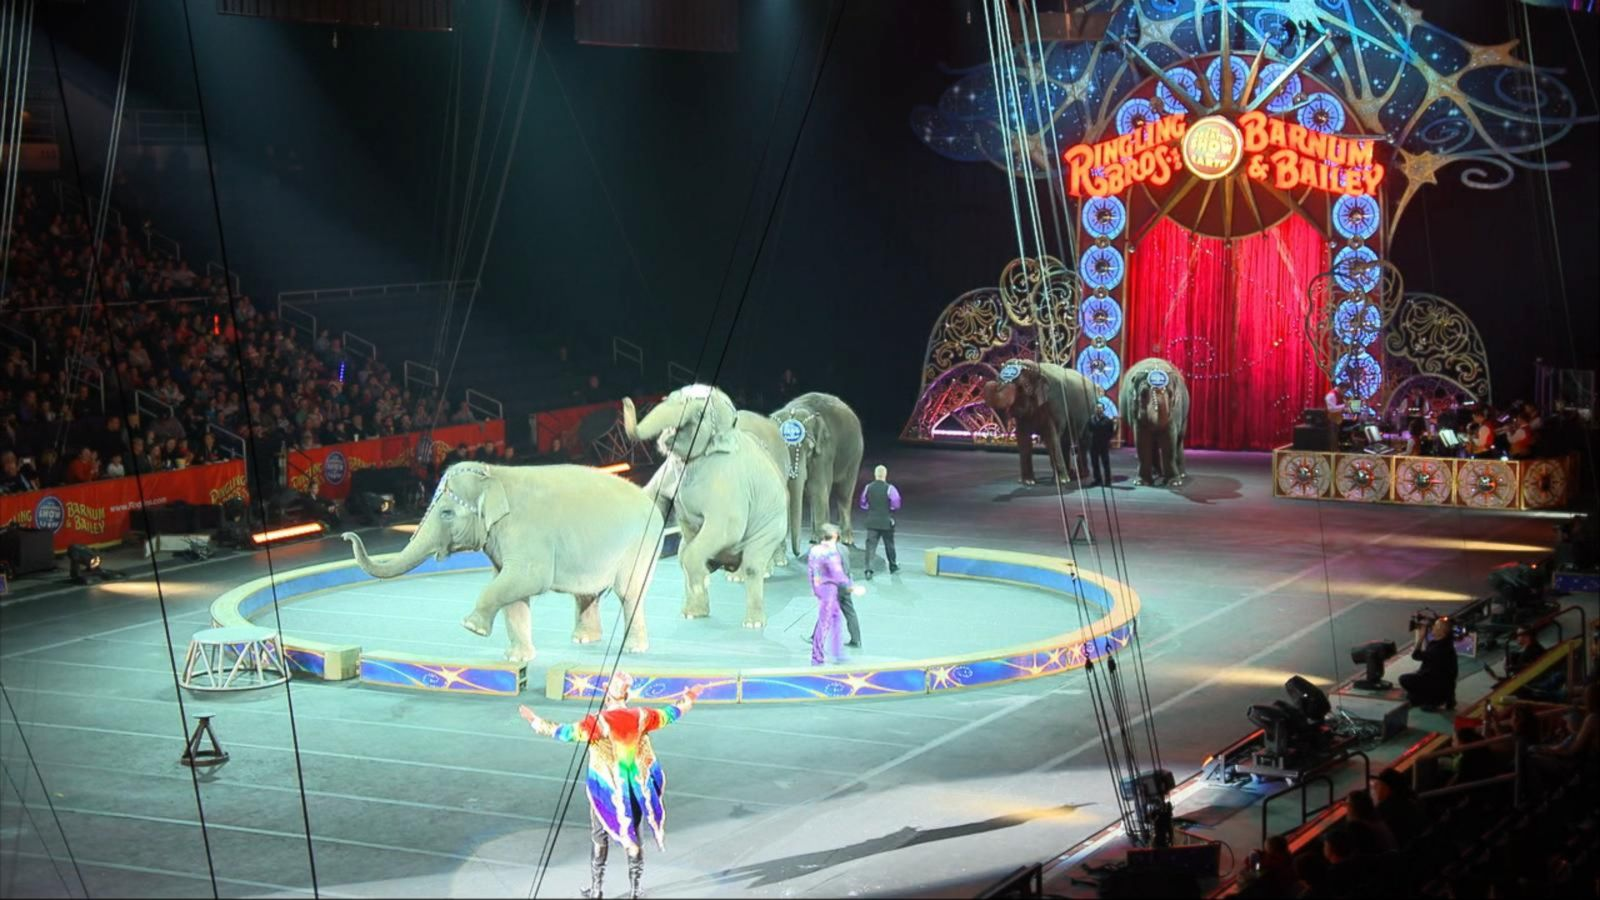 VIDEO: Ringling Brothers Barnum and Bailey Circus Call It Quits After Century and a Half of Entertainment